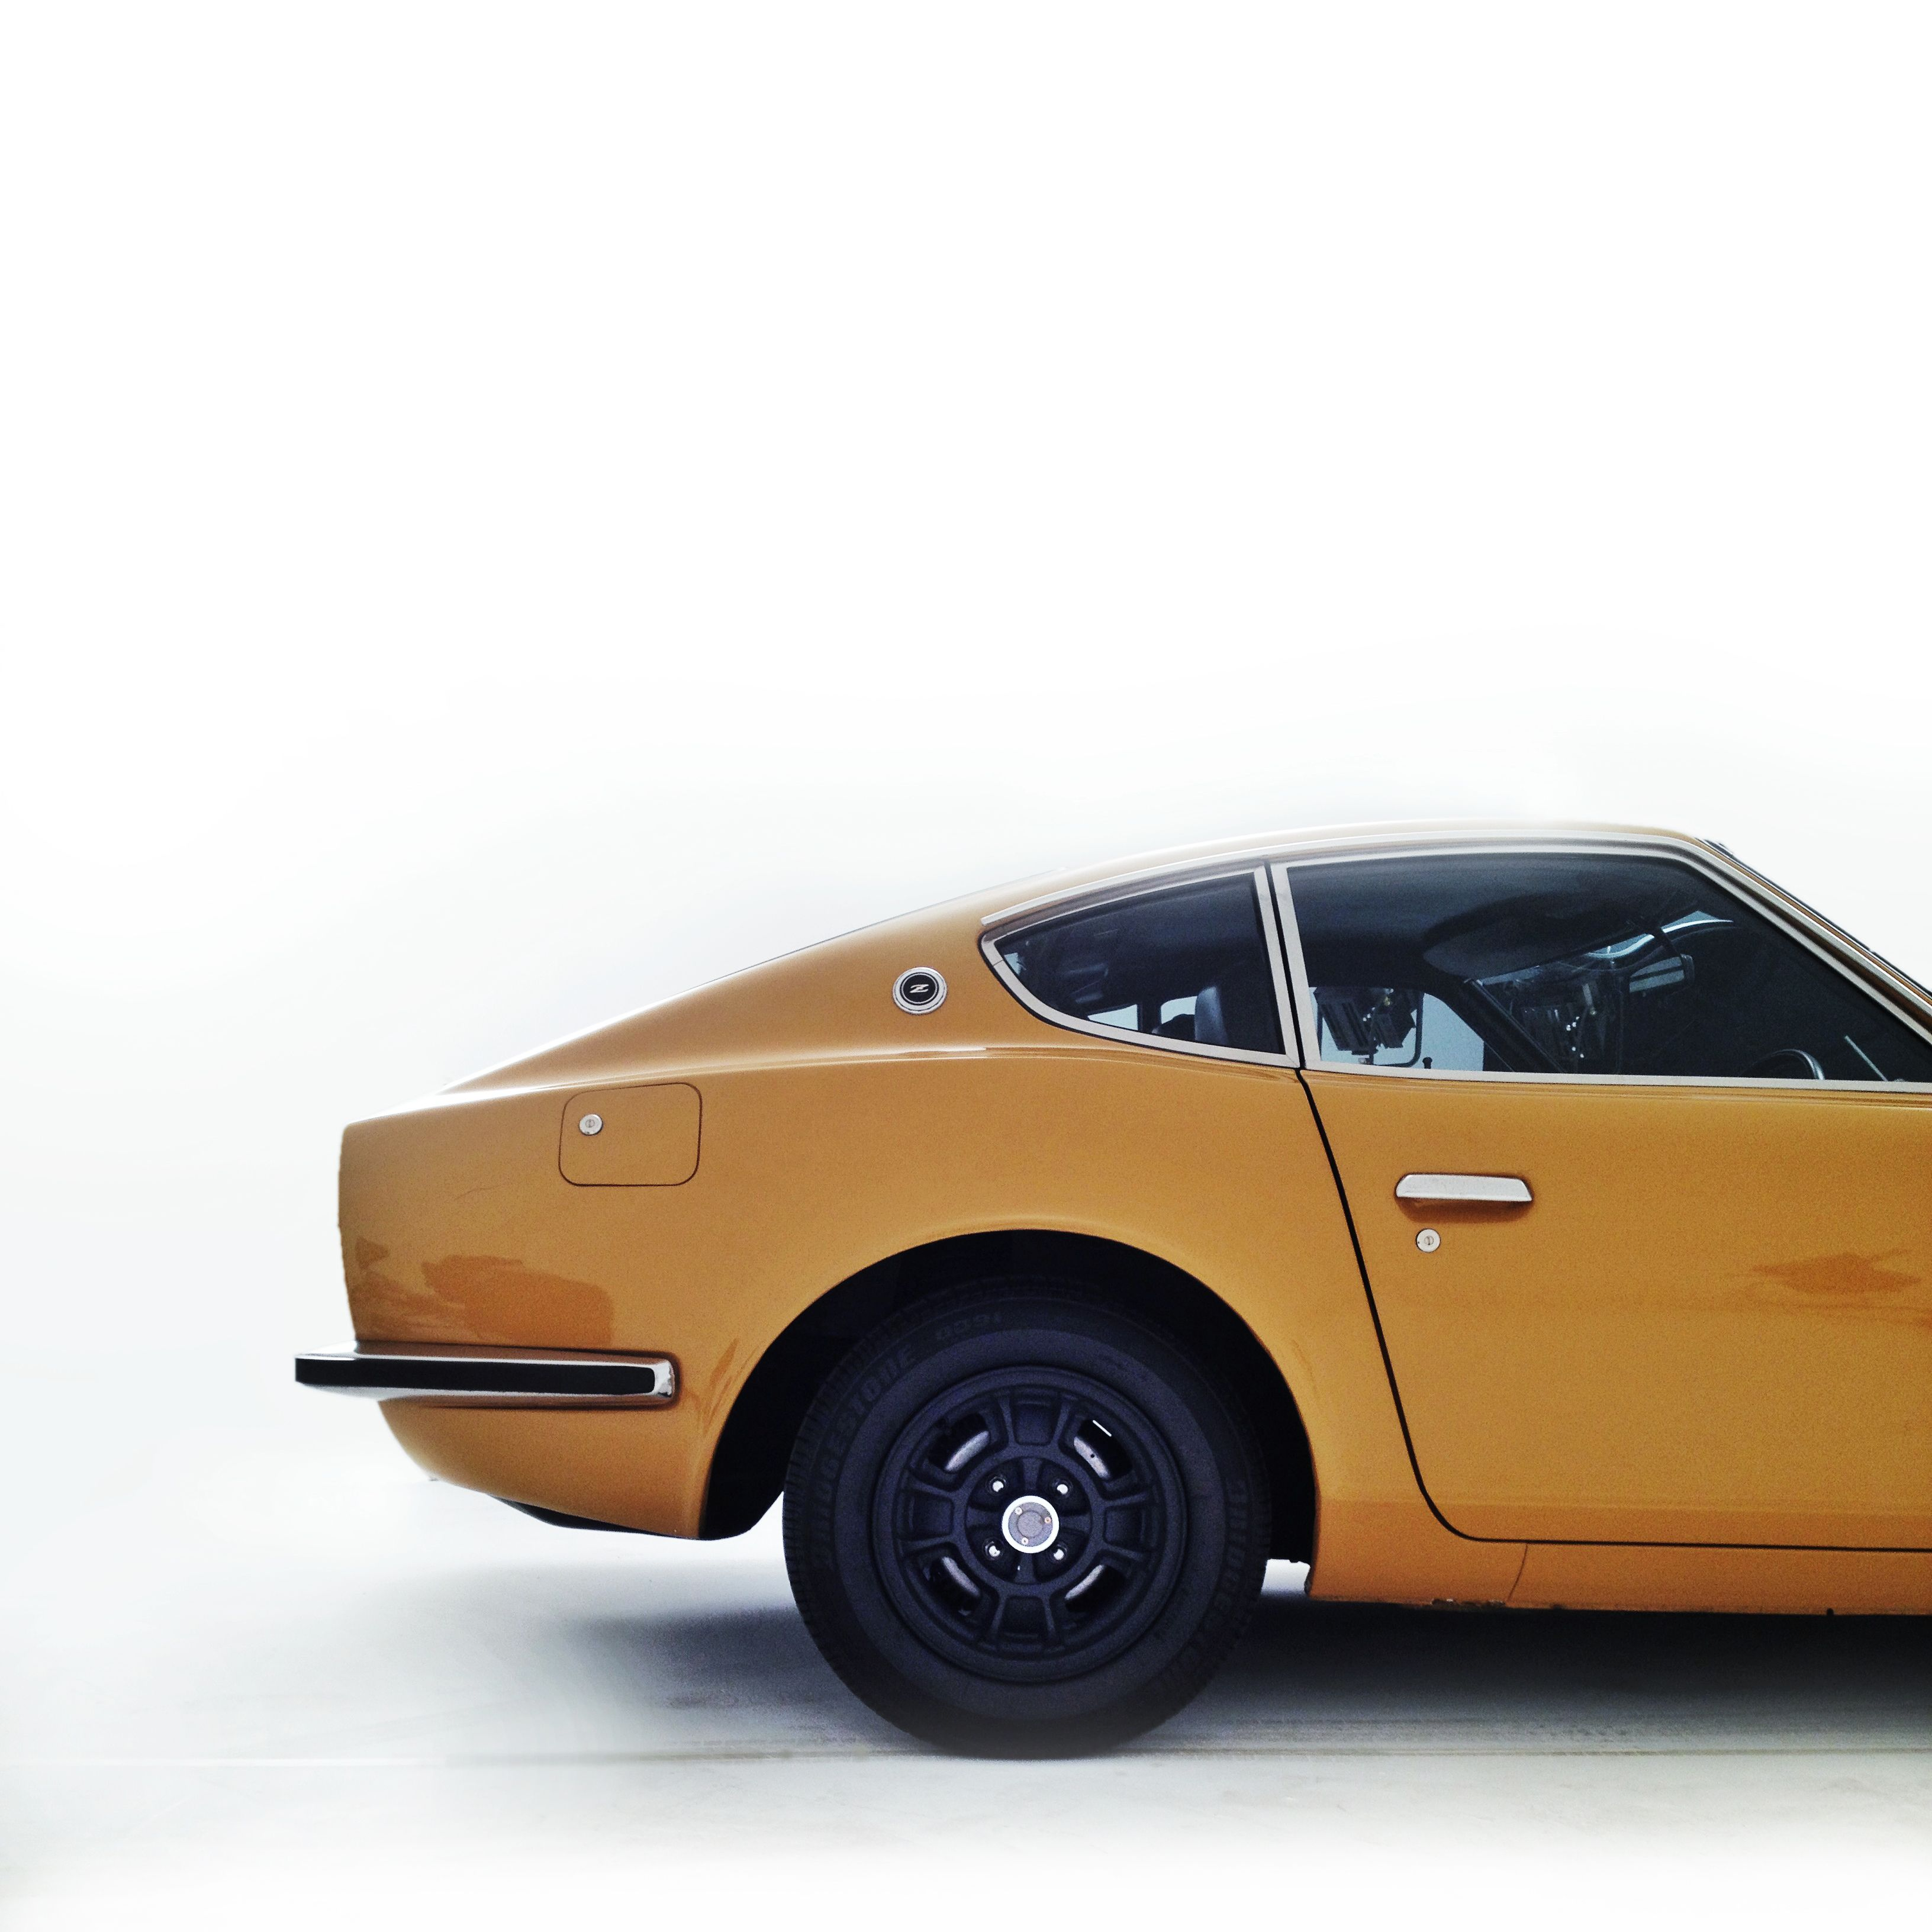 Nissan Skyline All Generations: 1970 First Generation #Nissan #Fairlady #Z 432 Had The